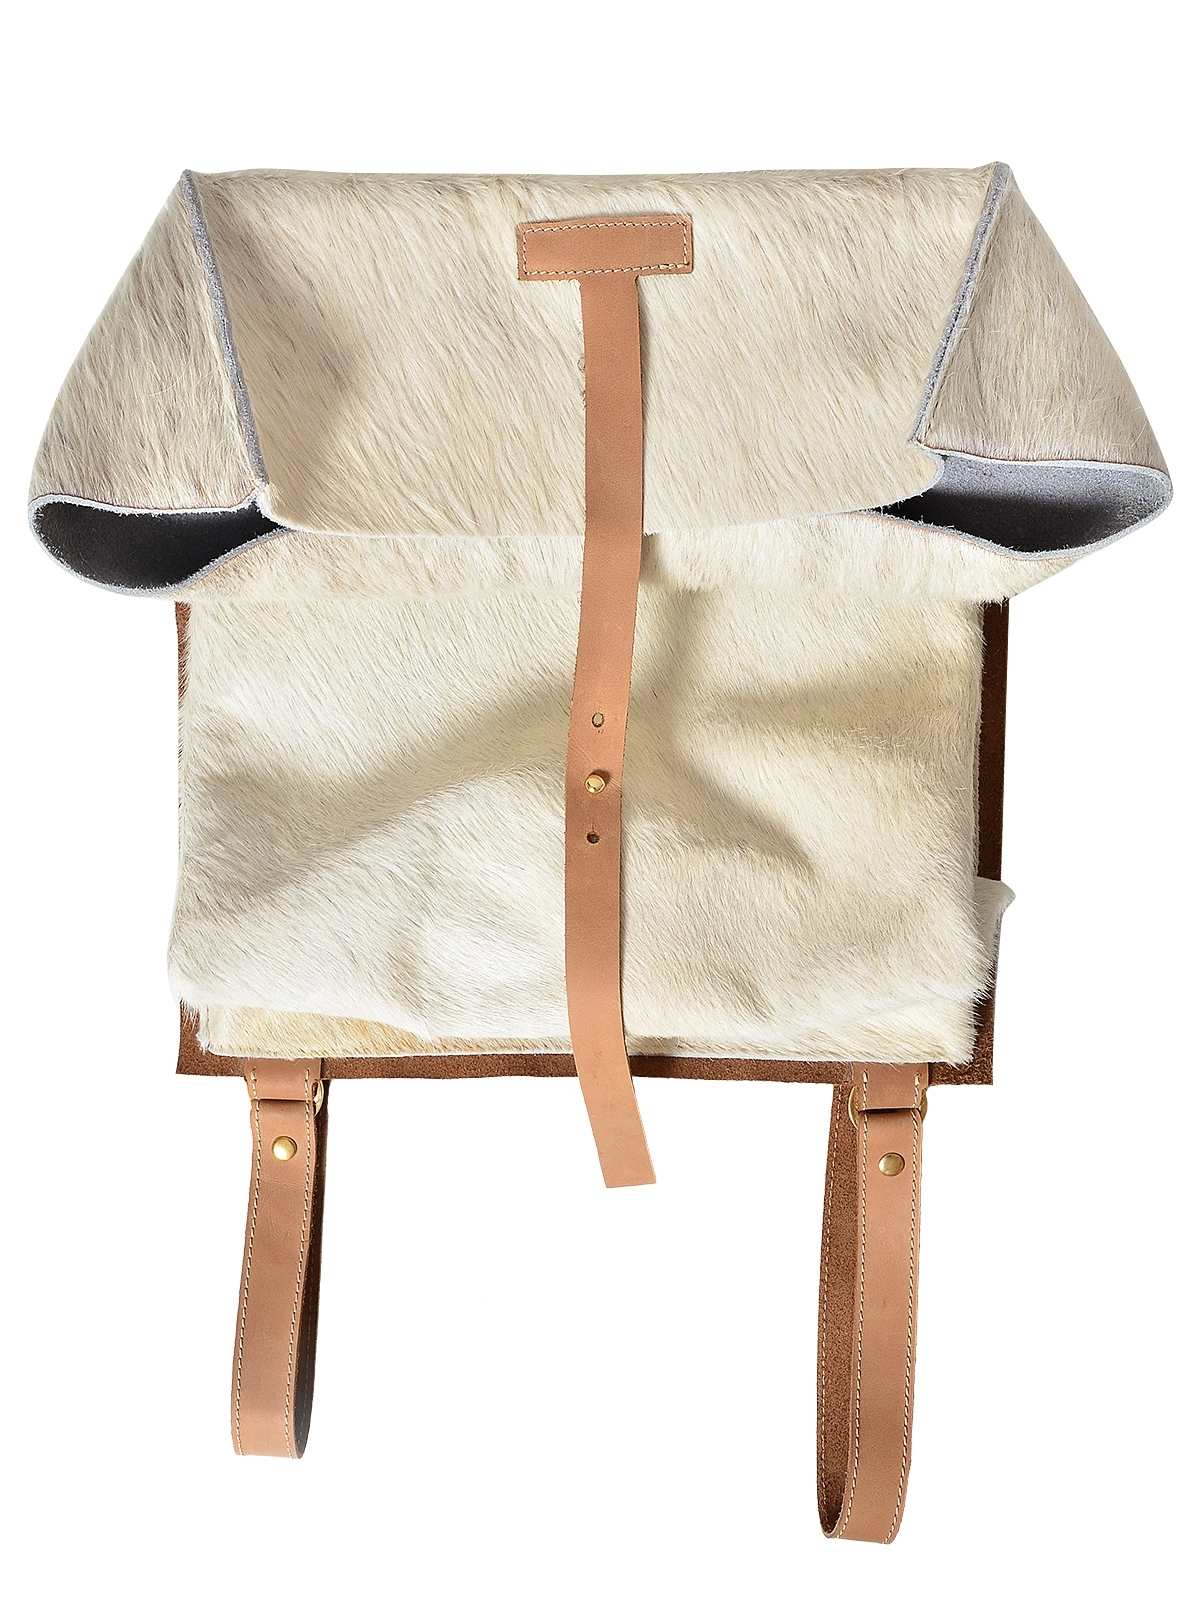 Cattle leather bag by Ana Alexe